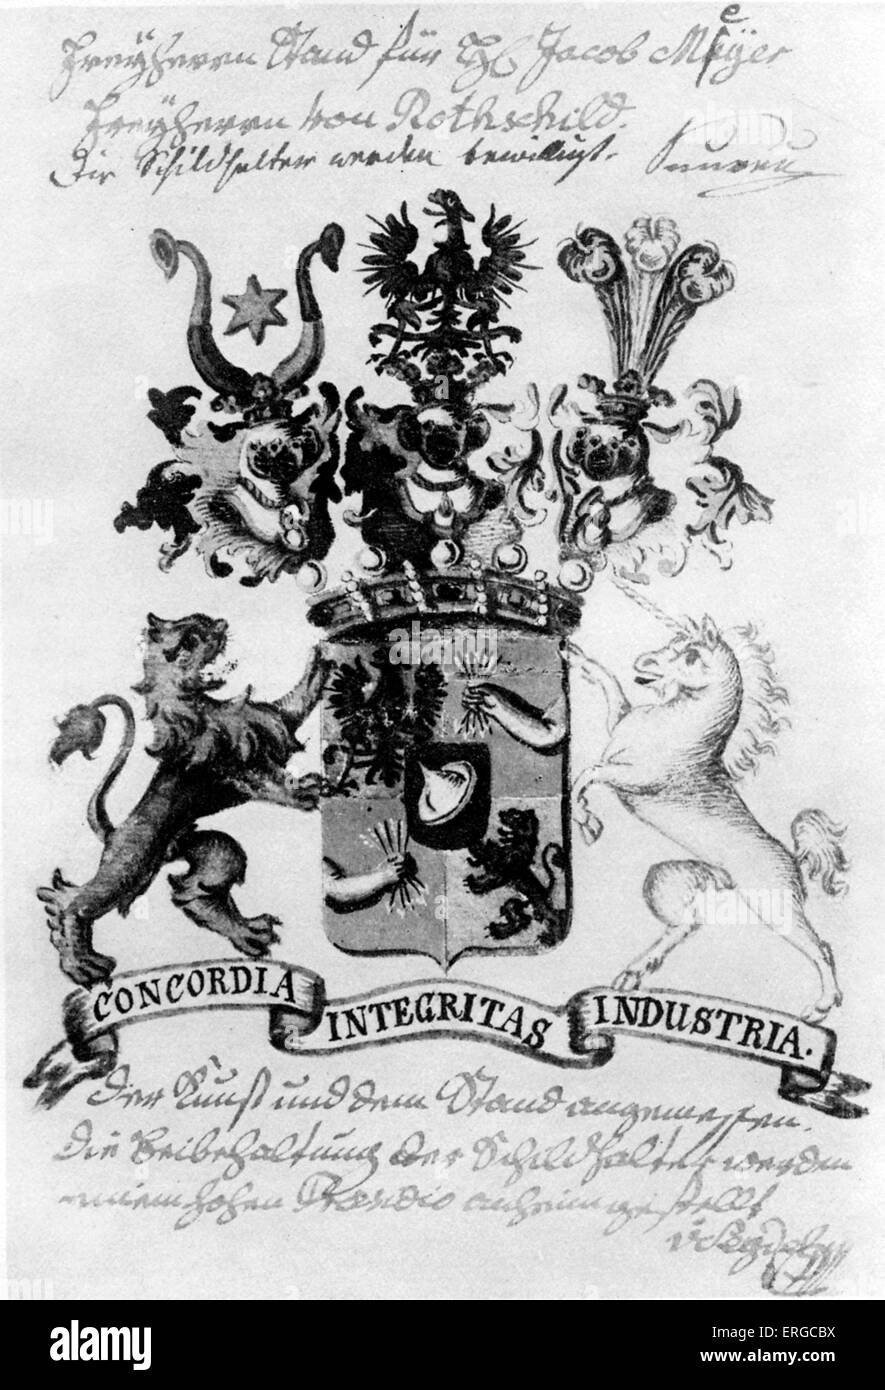 The Baronial Coat of Arms of the Rothschild Family, granted in 1822. - Stock Image